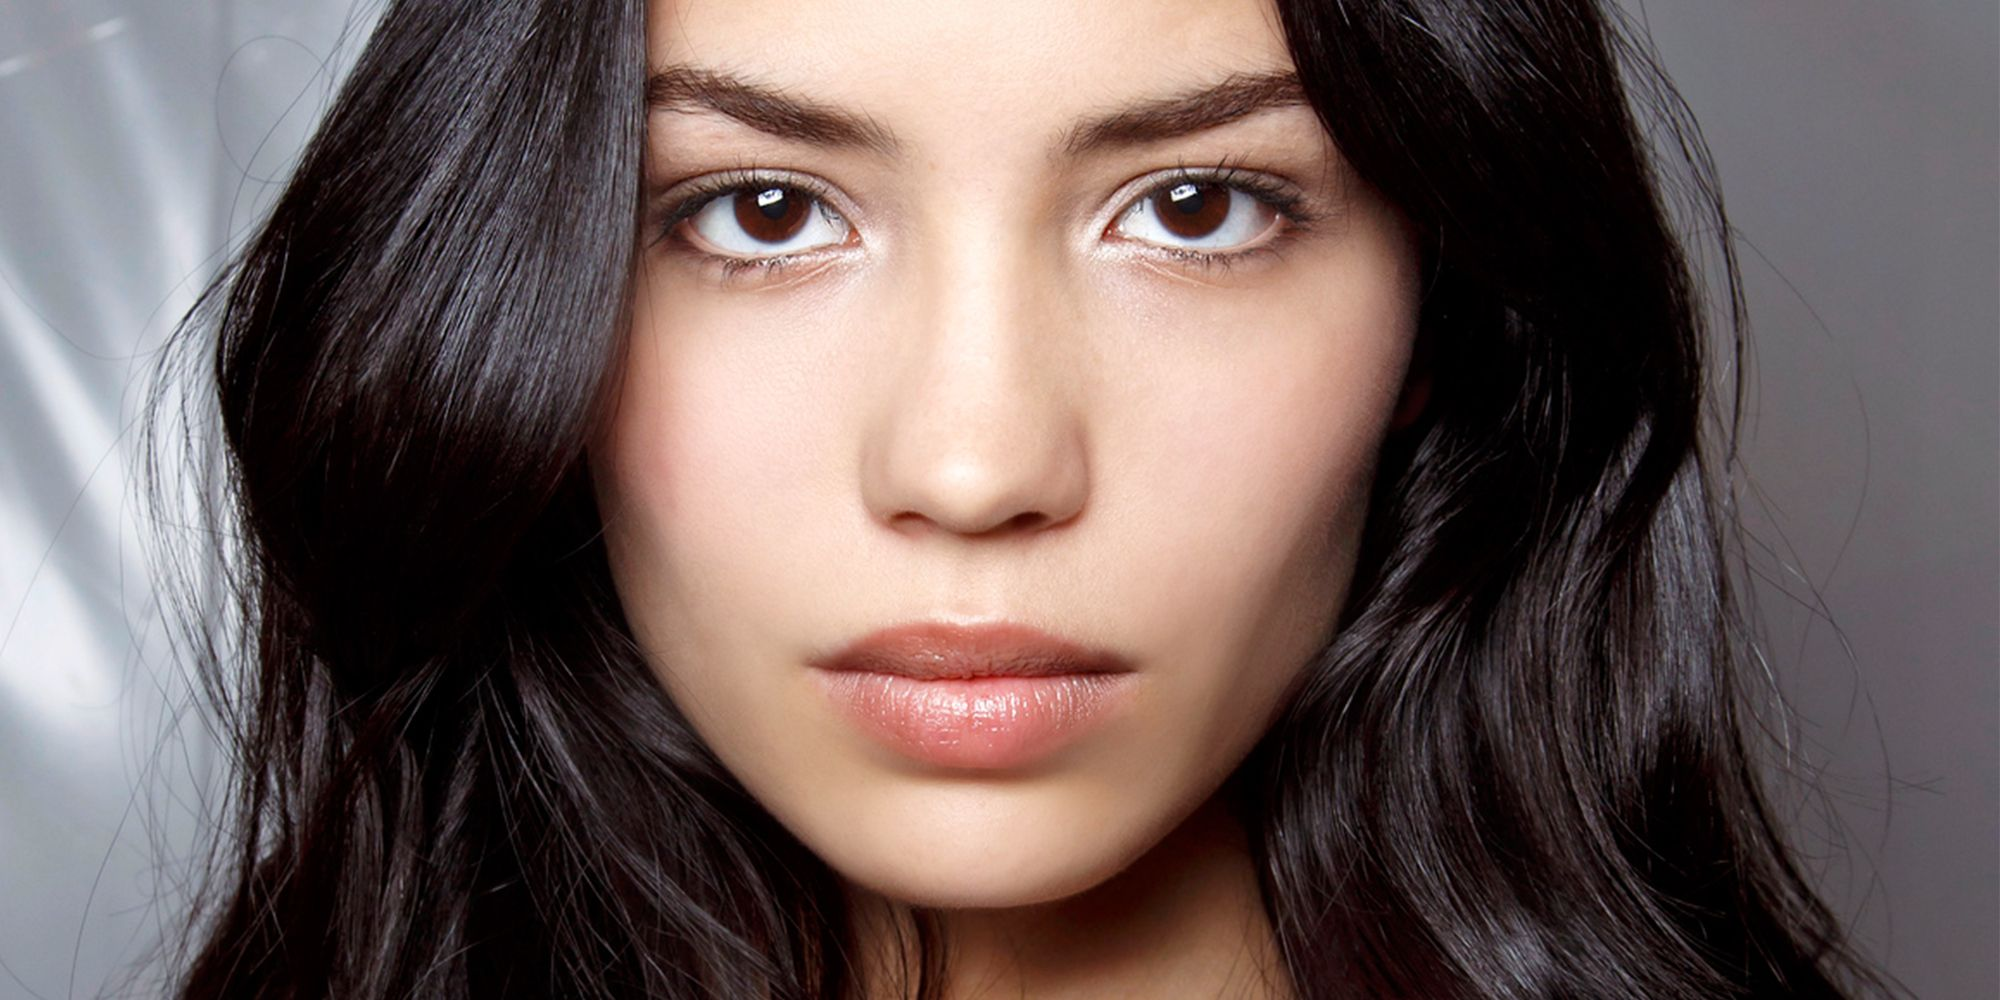 20 Concealer Tips for Covering Zits, Dark Circles, Discoloration, and More